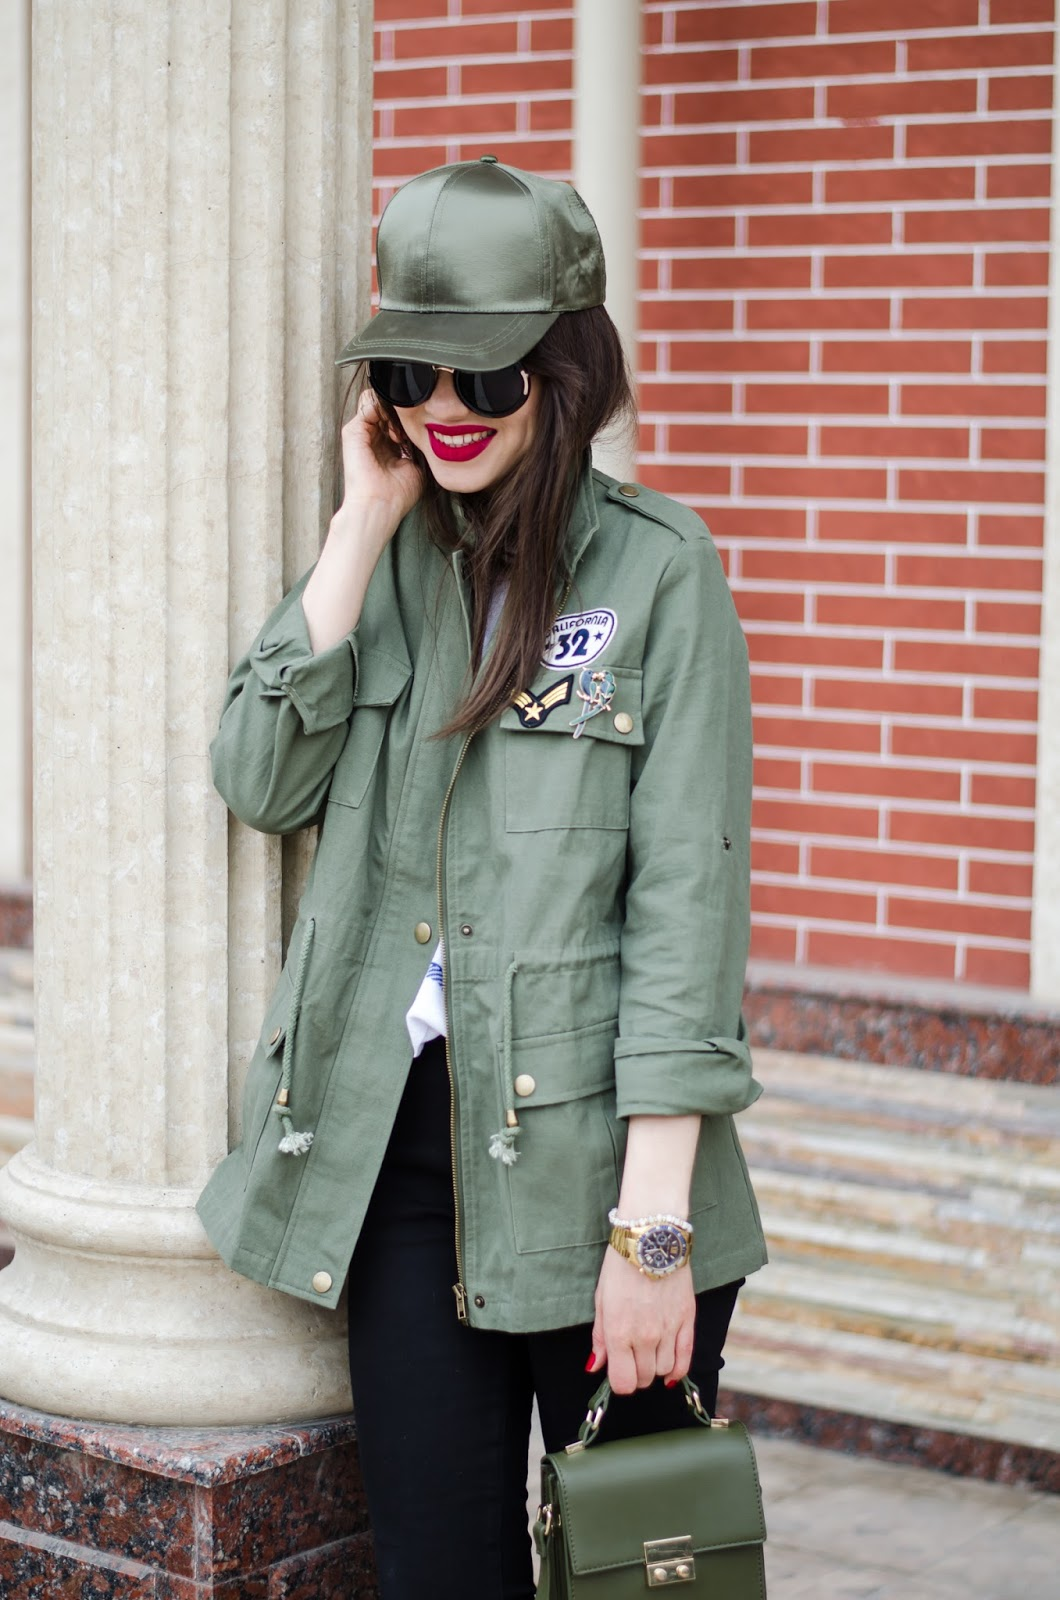 fashion blogger diyorasnotes diyora beta baseball cap asos parka sport outfit lookoftheday red lips